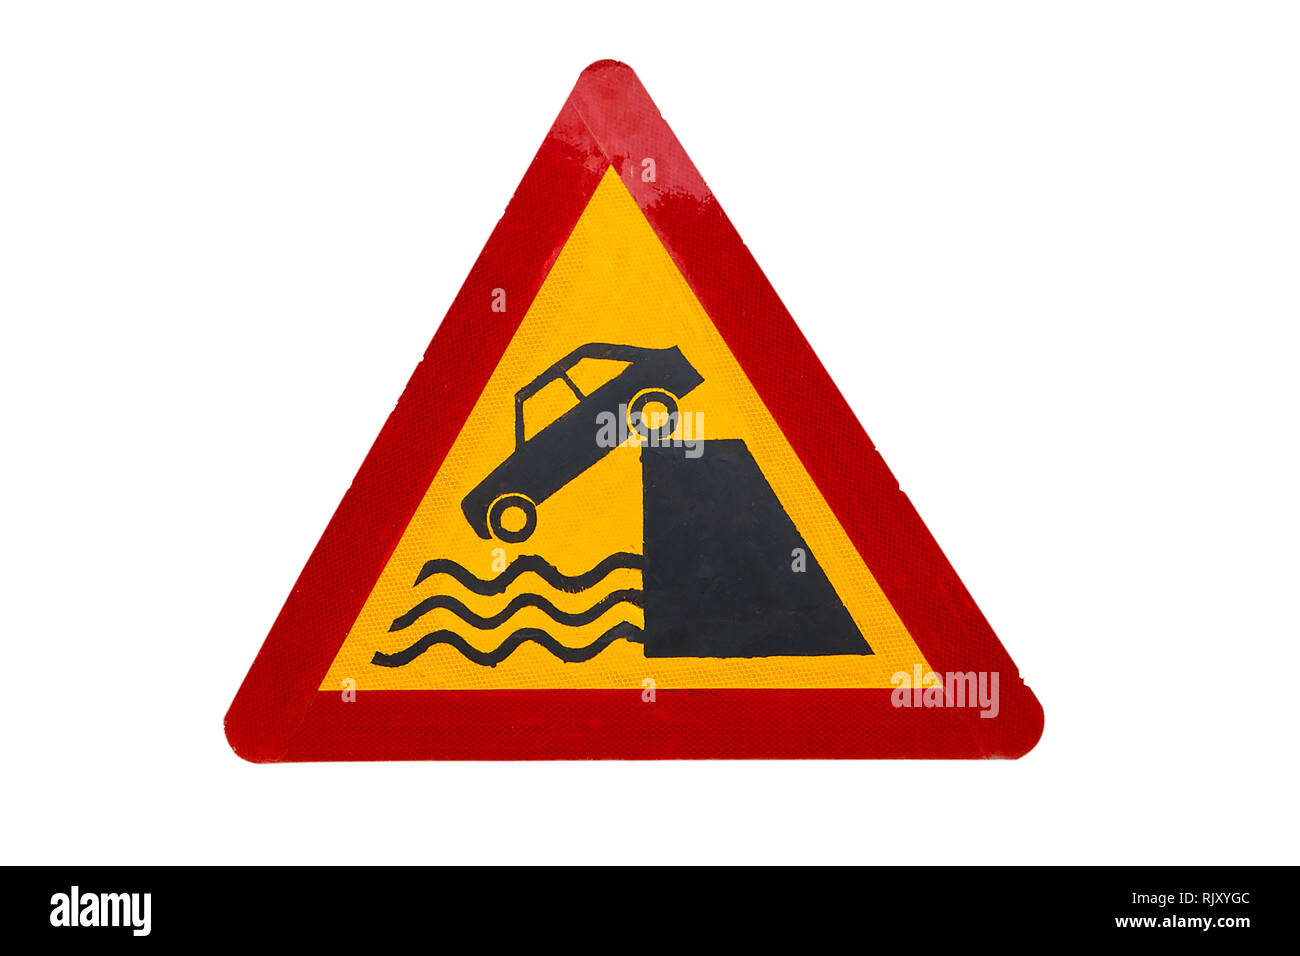 Road sign Departure to quay, Road sign indicating that the car can fall into the river - Stock Image